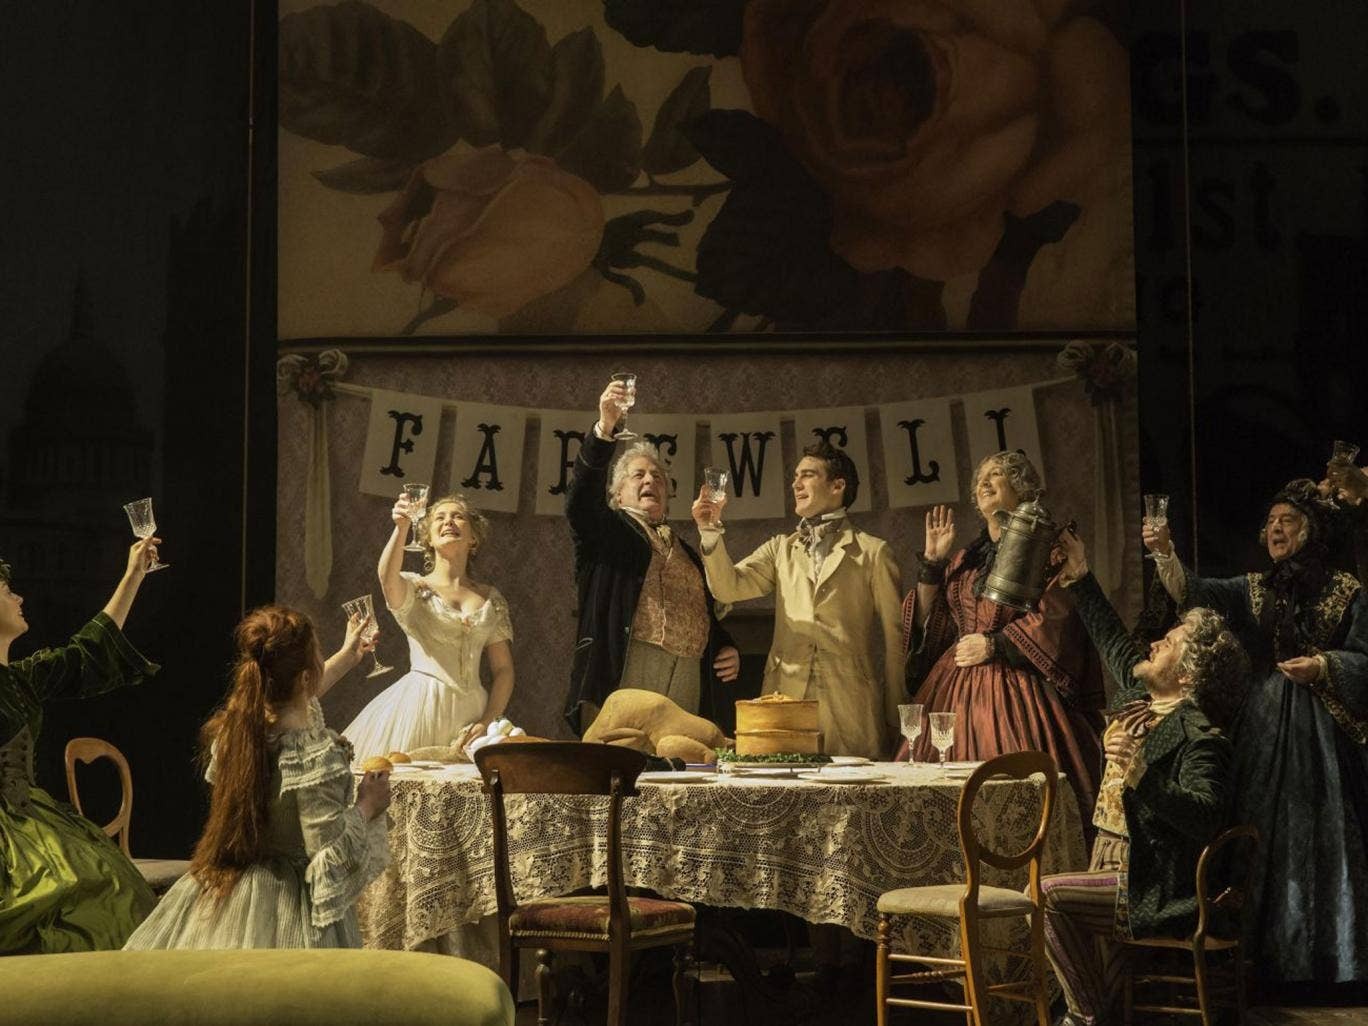 Joe Wright's affectionate Trelawny of theWells at the Donmar